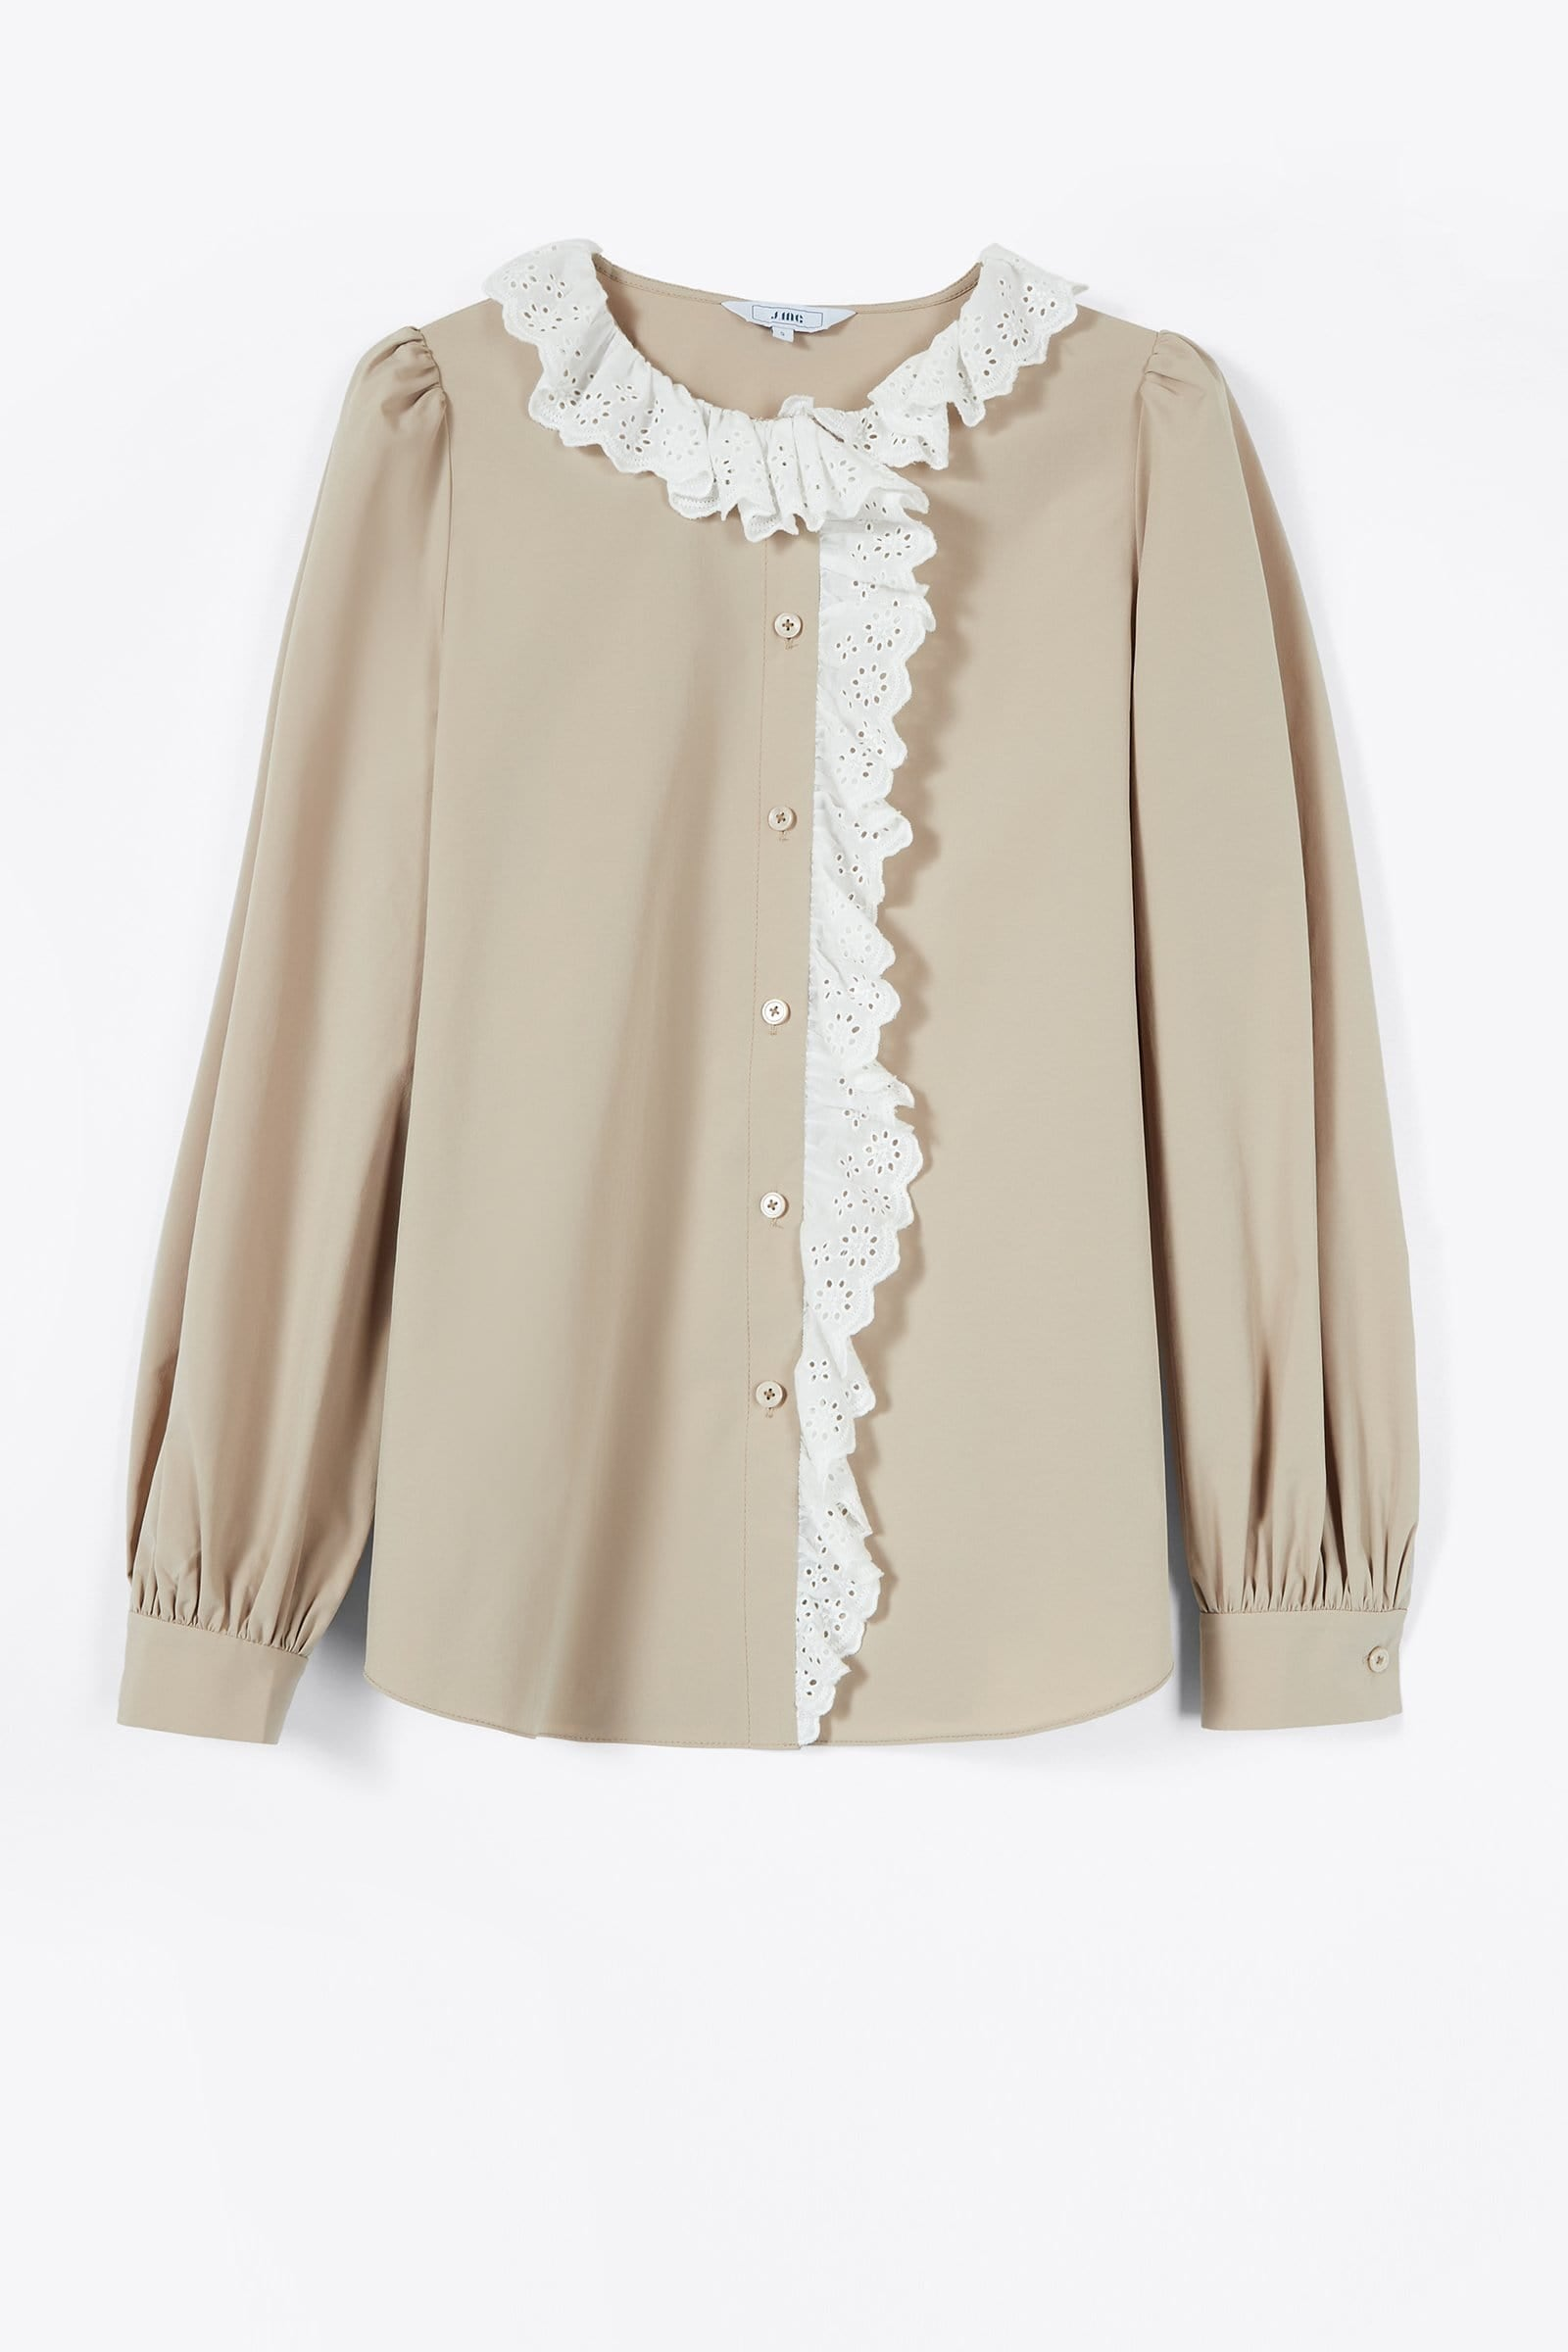 Maeve Tan Frilly Shirt